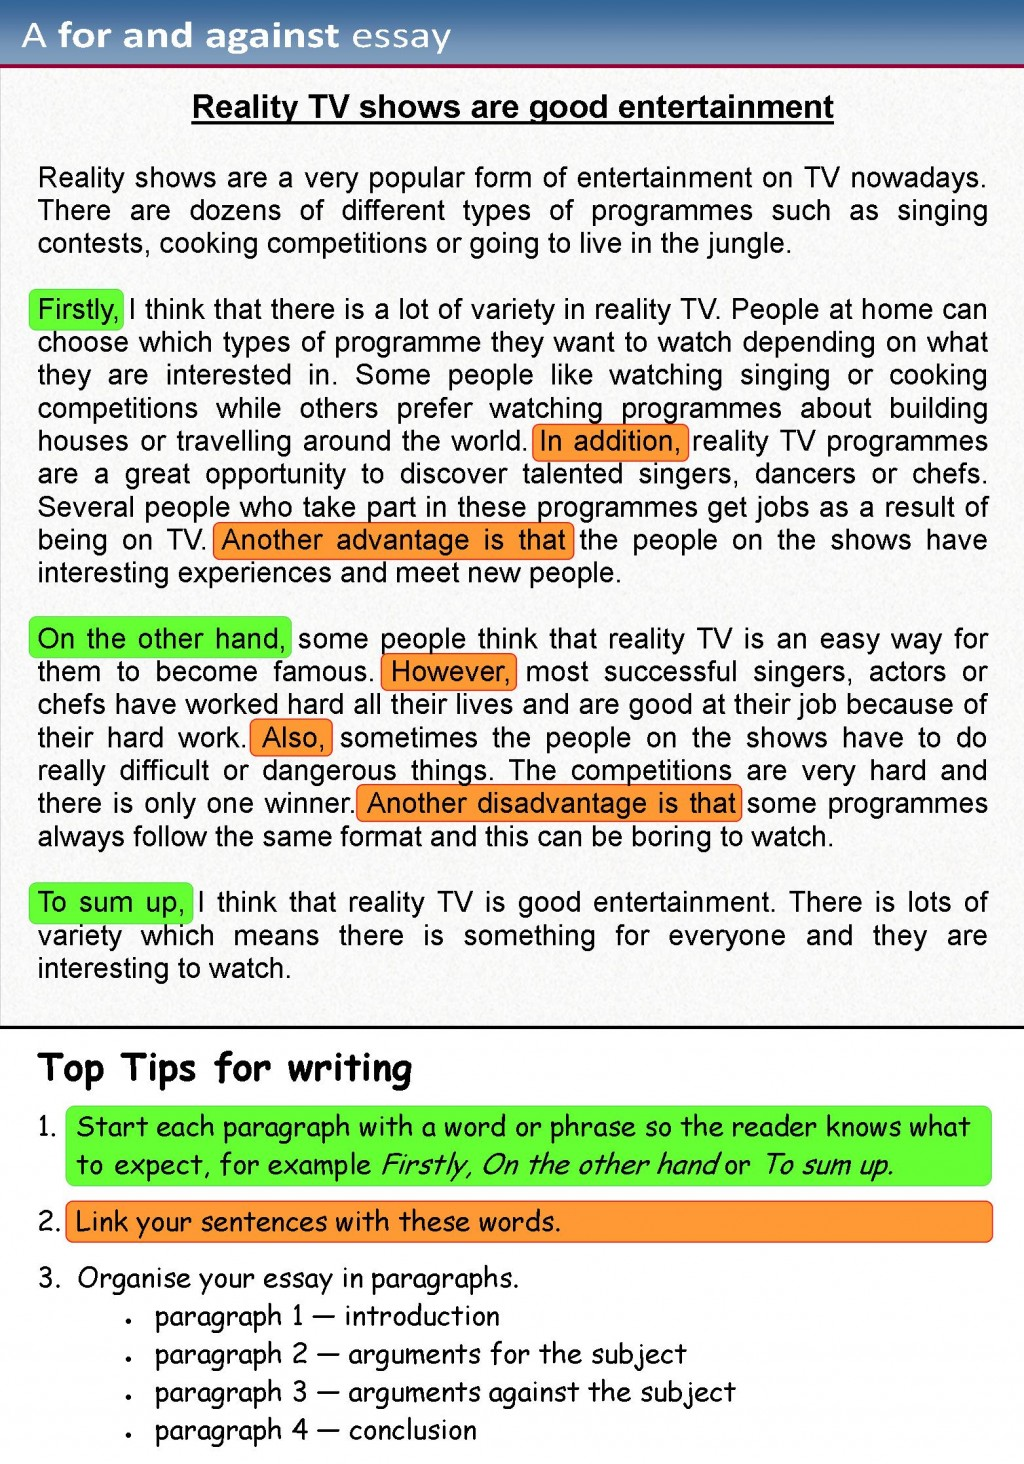 024 Tips To Write Good Essay Example For Against 1 Marvelous A Sat Descriptive Narrative Large